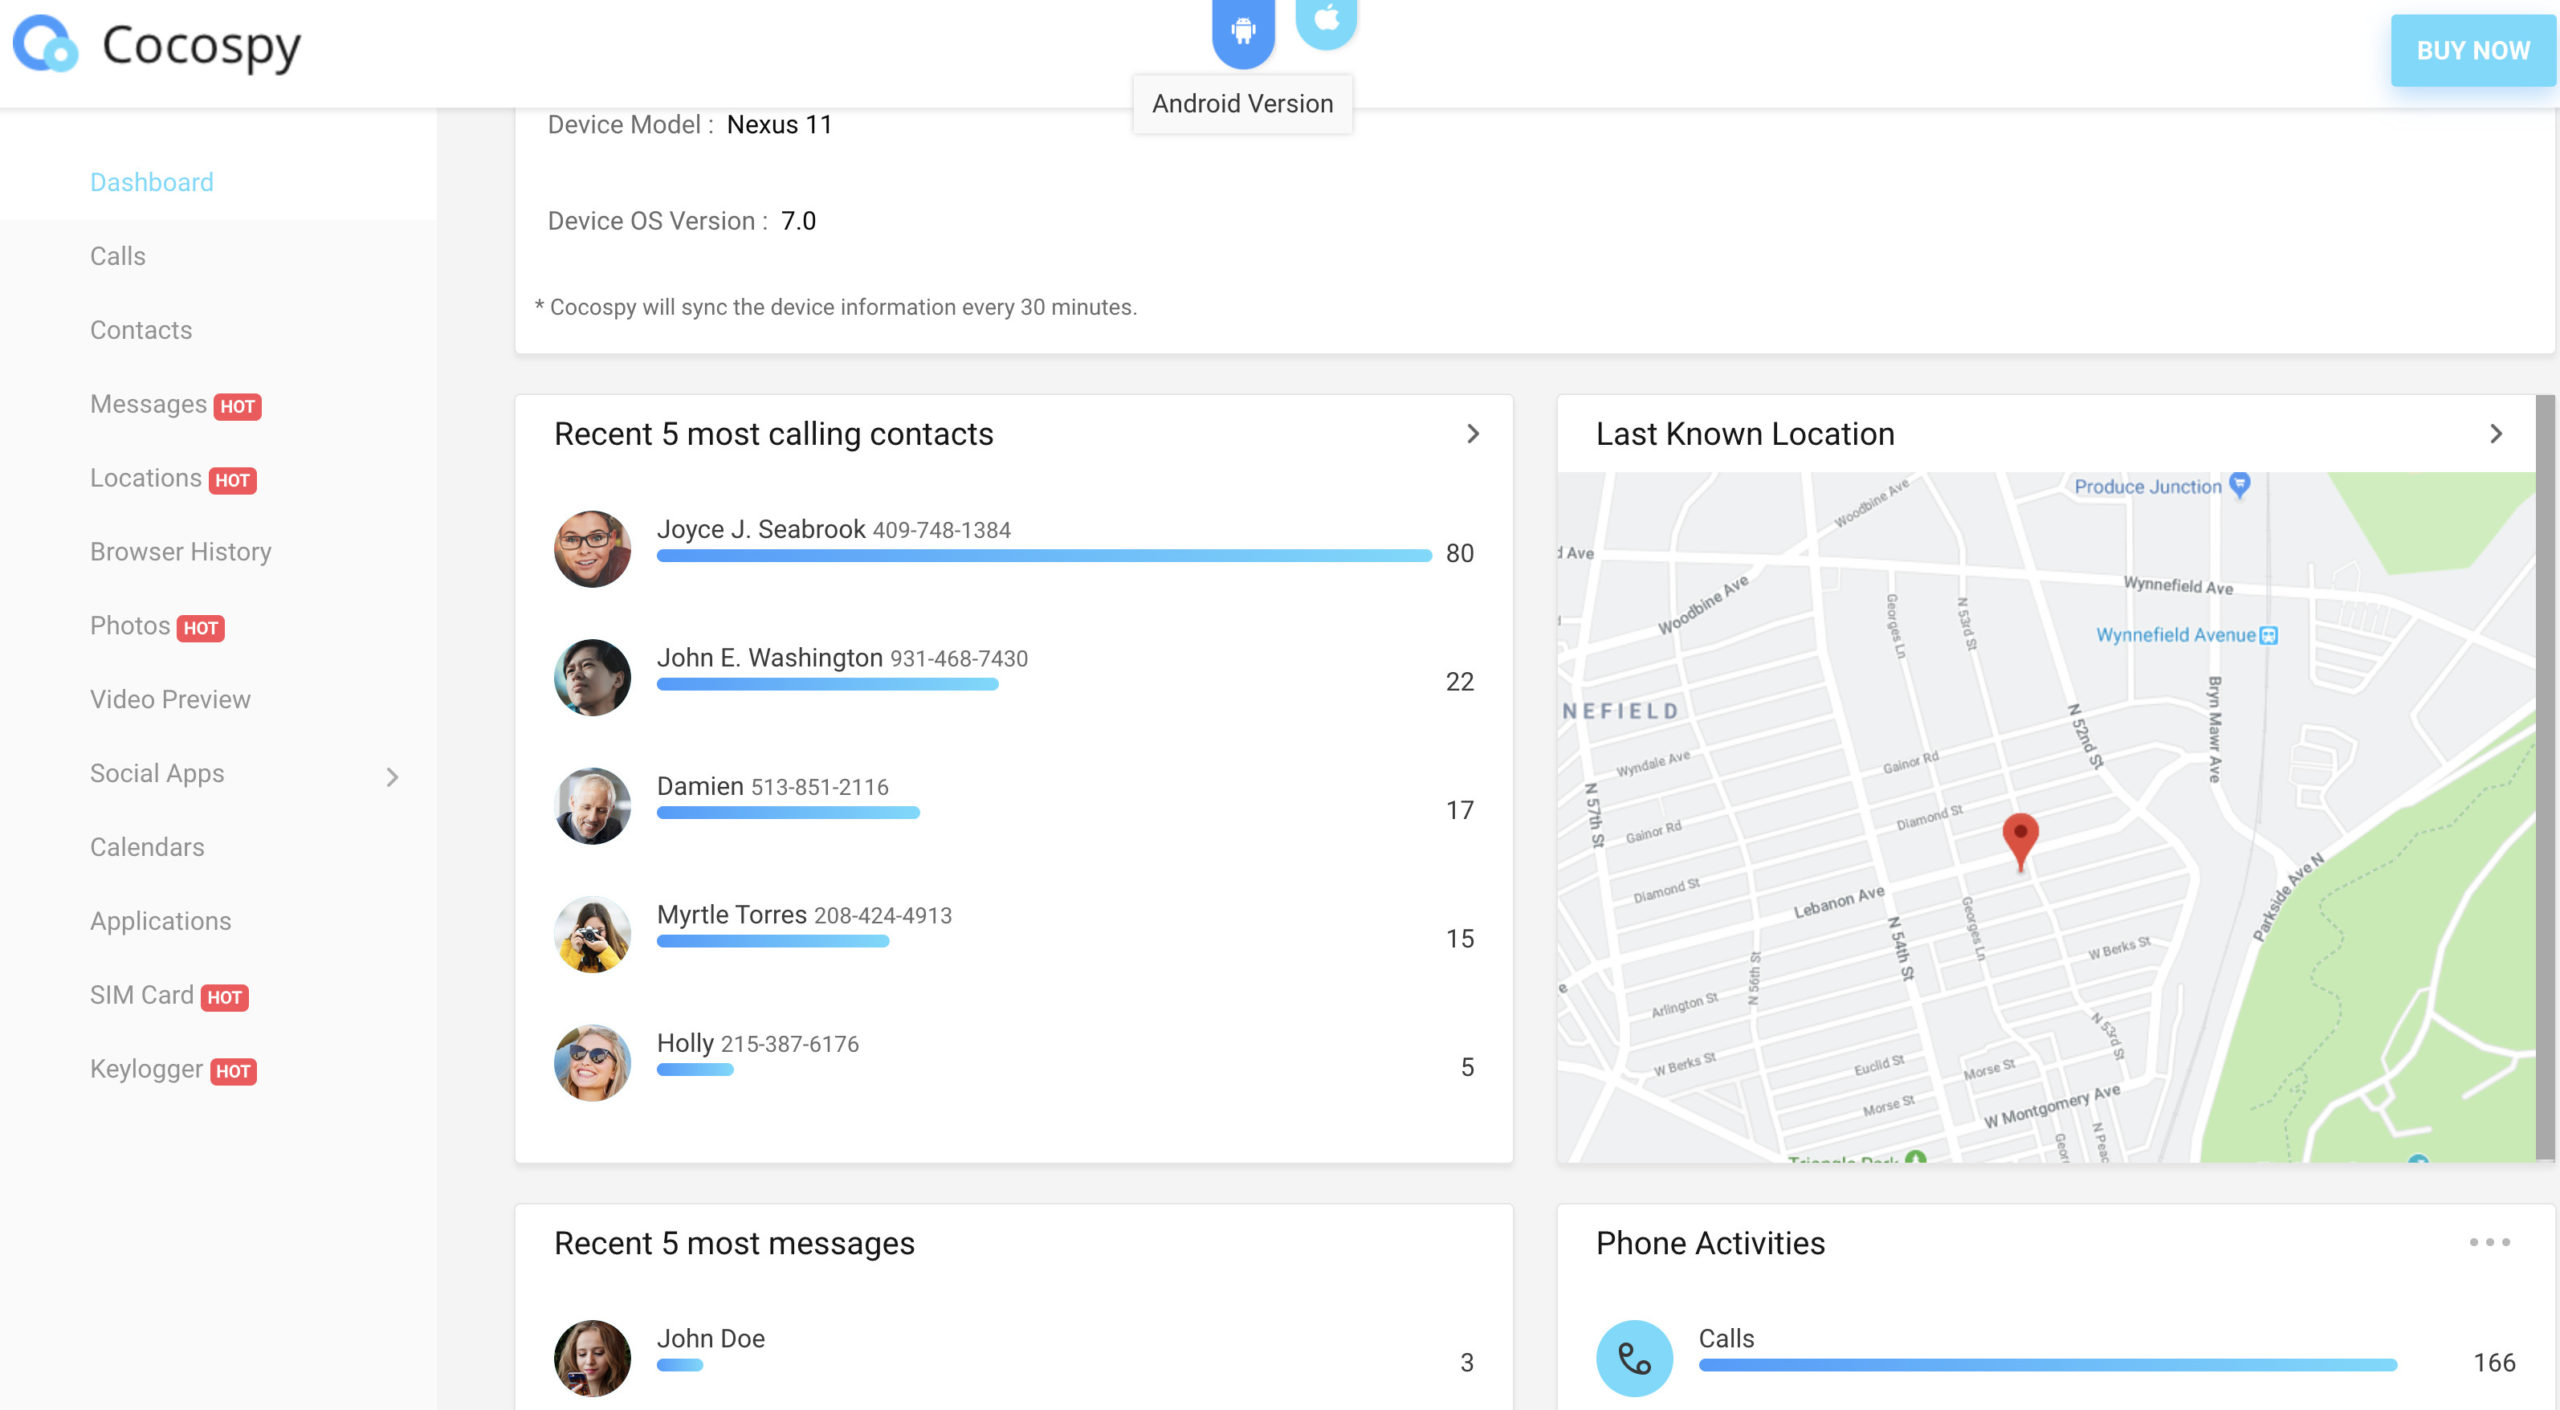 Cocospy android dashboard